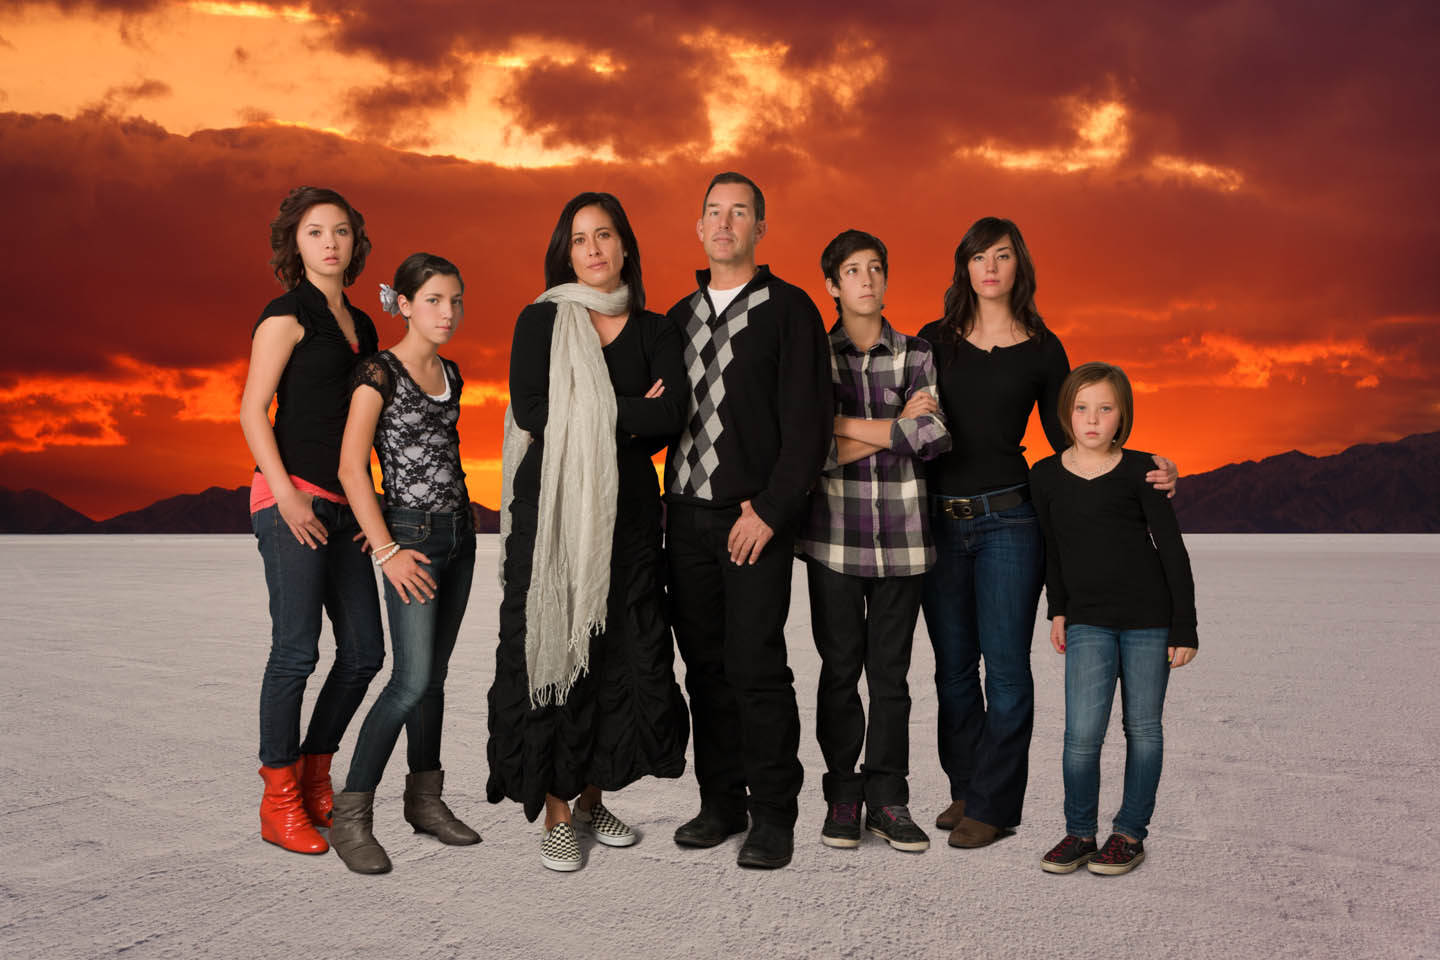 Family on the Salt Flats with a dramatic sky